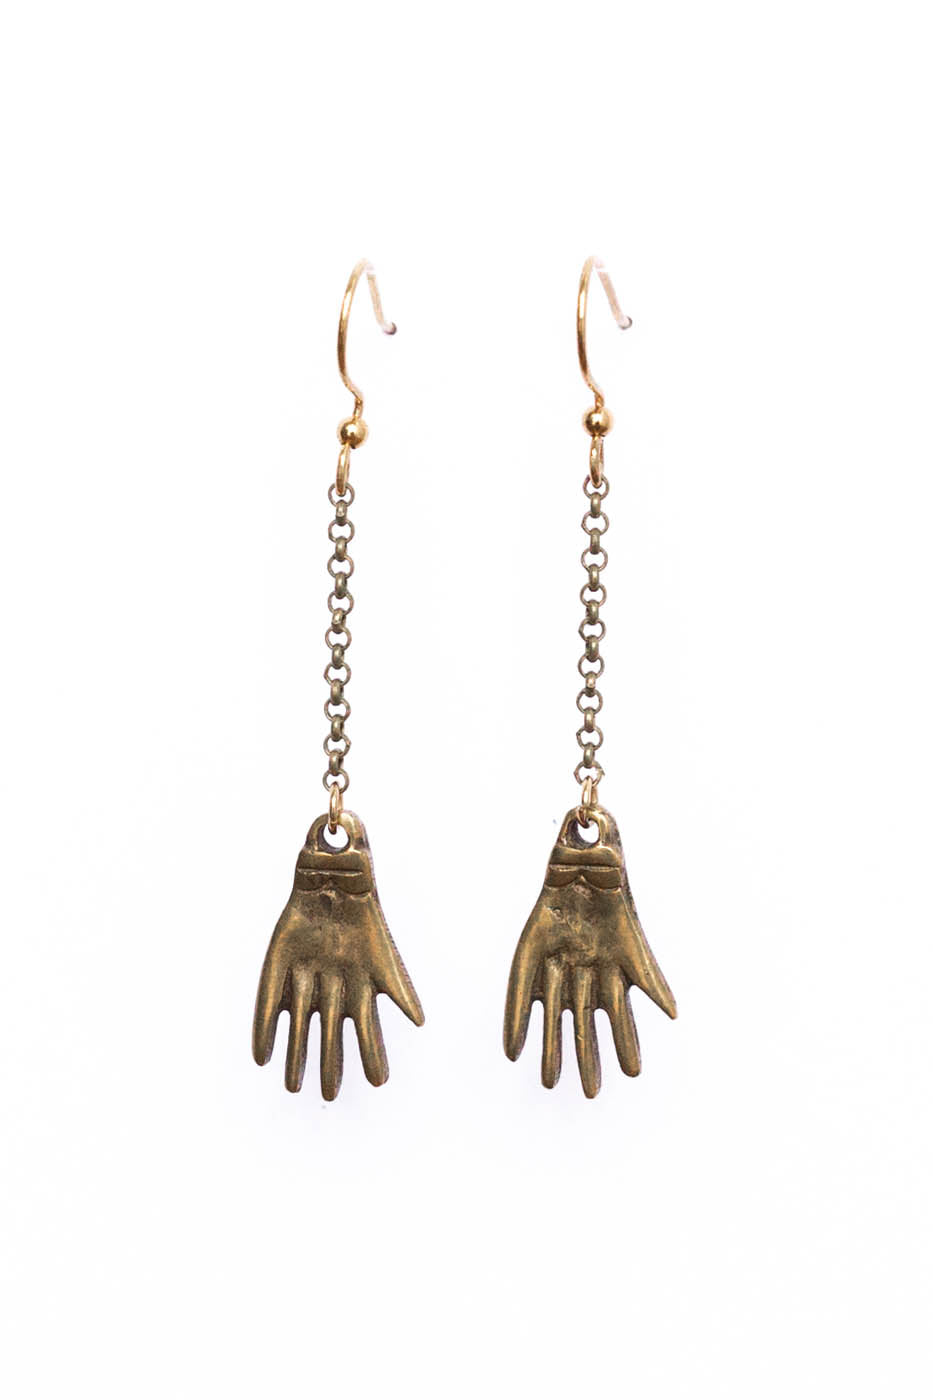 Brass Hand Charm Earrings on Brass Chains